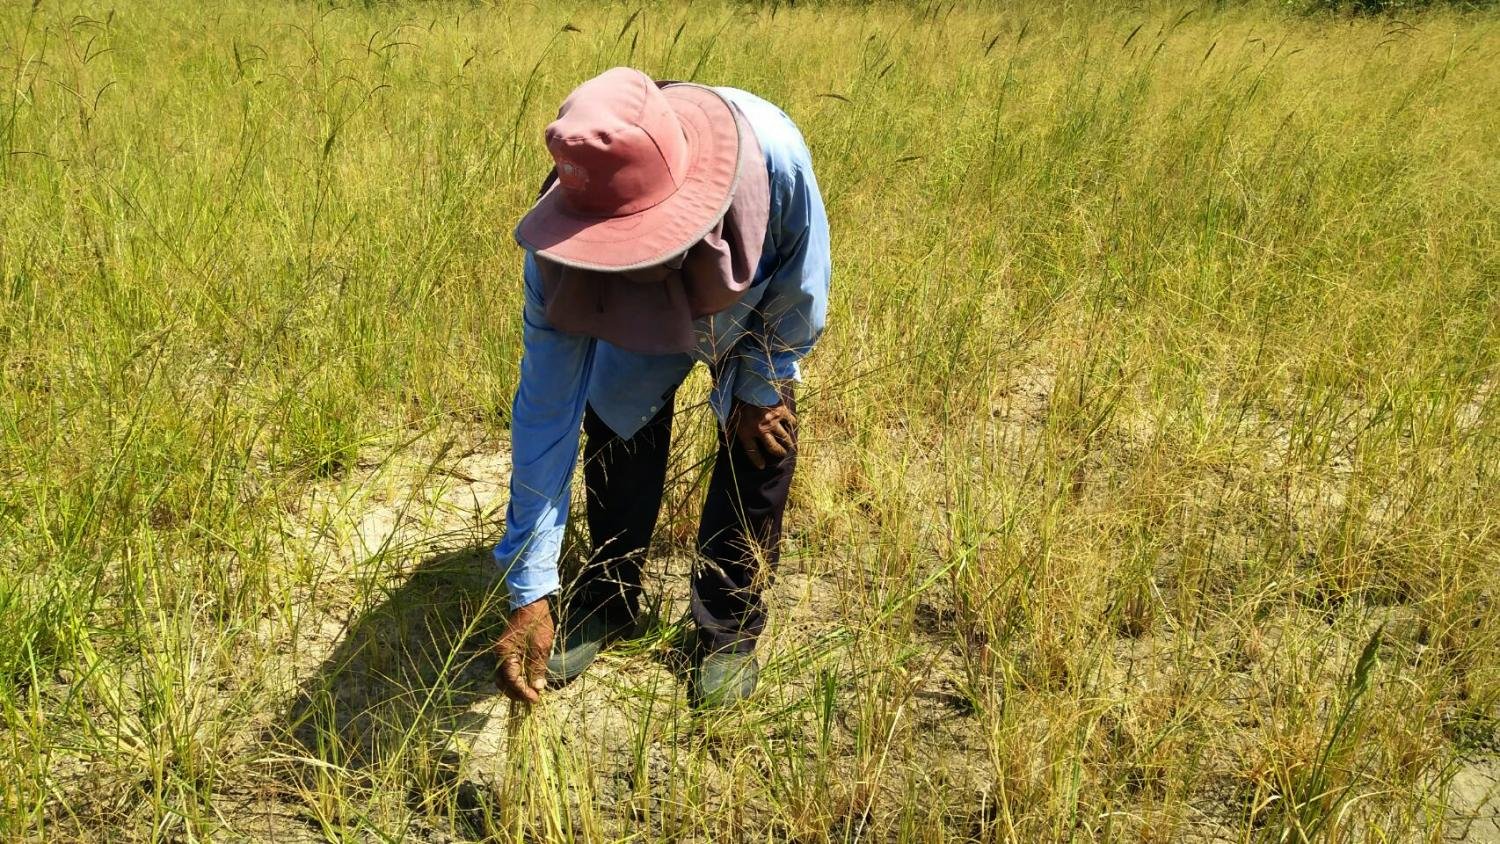 A farmer picks up damaged crops in a drought-affected rice field in Nakhon Ratchasima province. This year's 150% claims ratio in crop insurance is the highest in the past four years, says the Thai General Insurance Association.  PRASIT TANGPRASERT